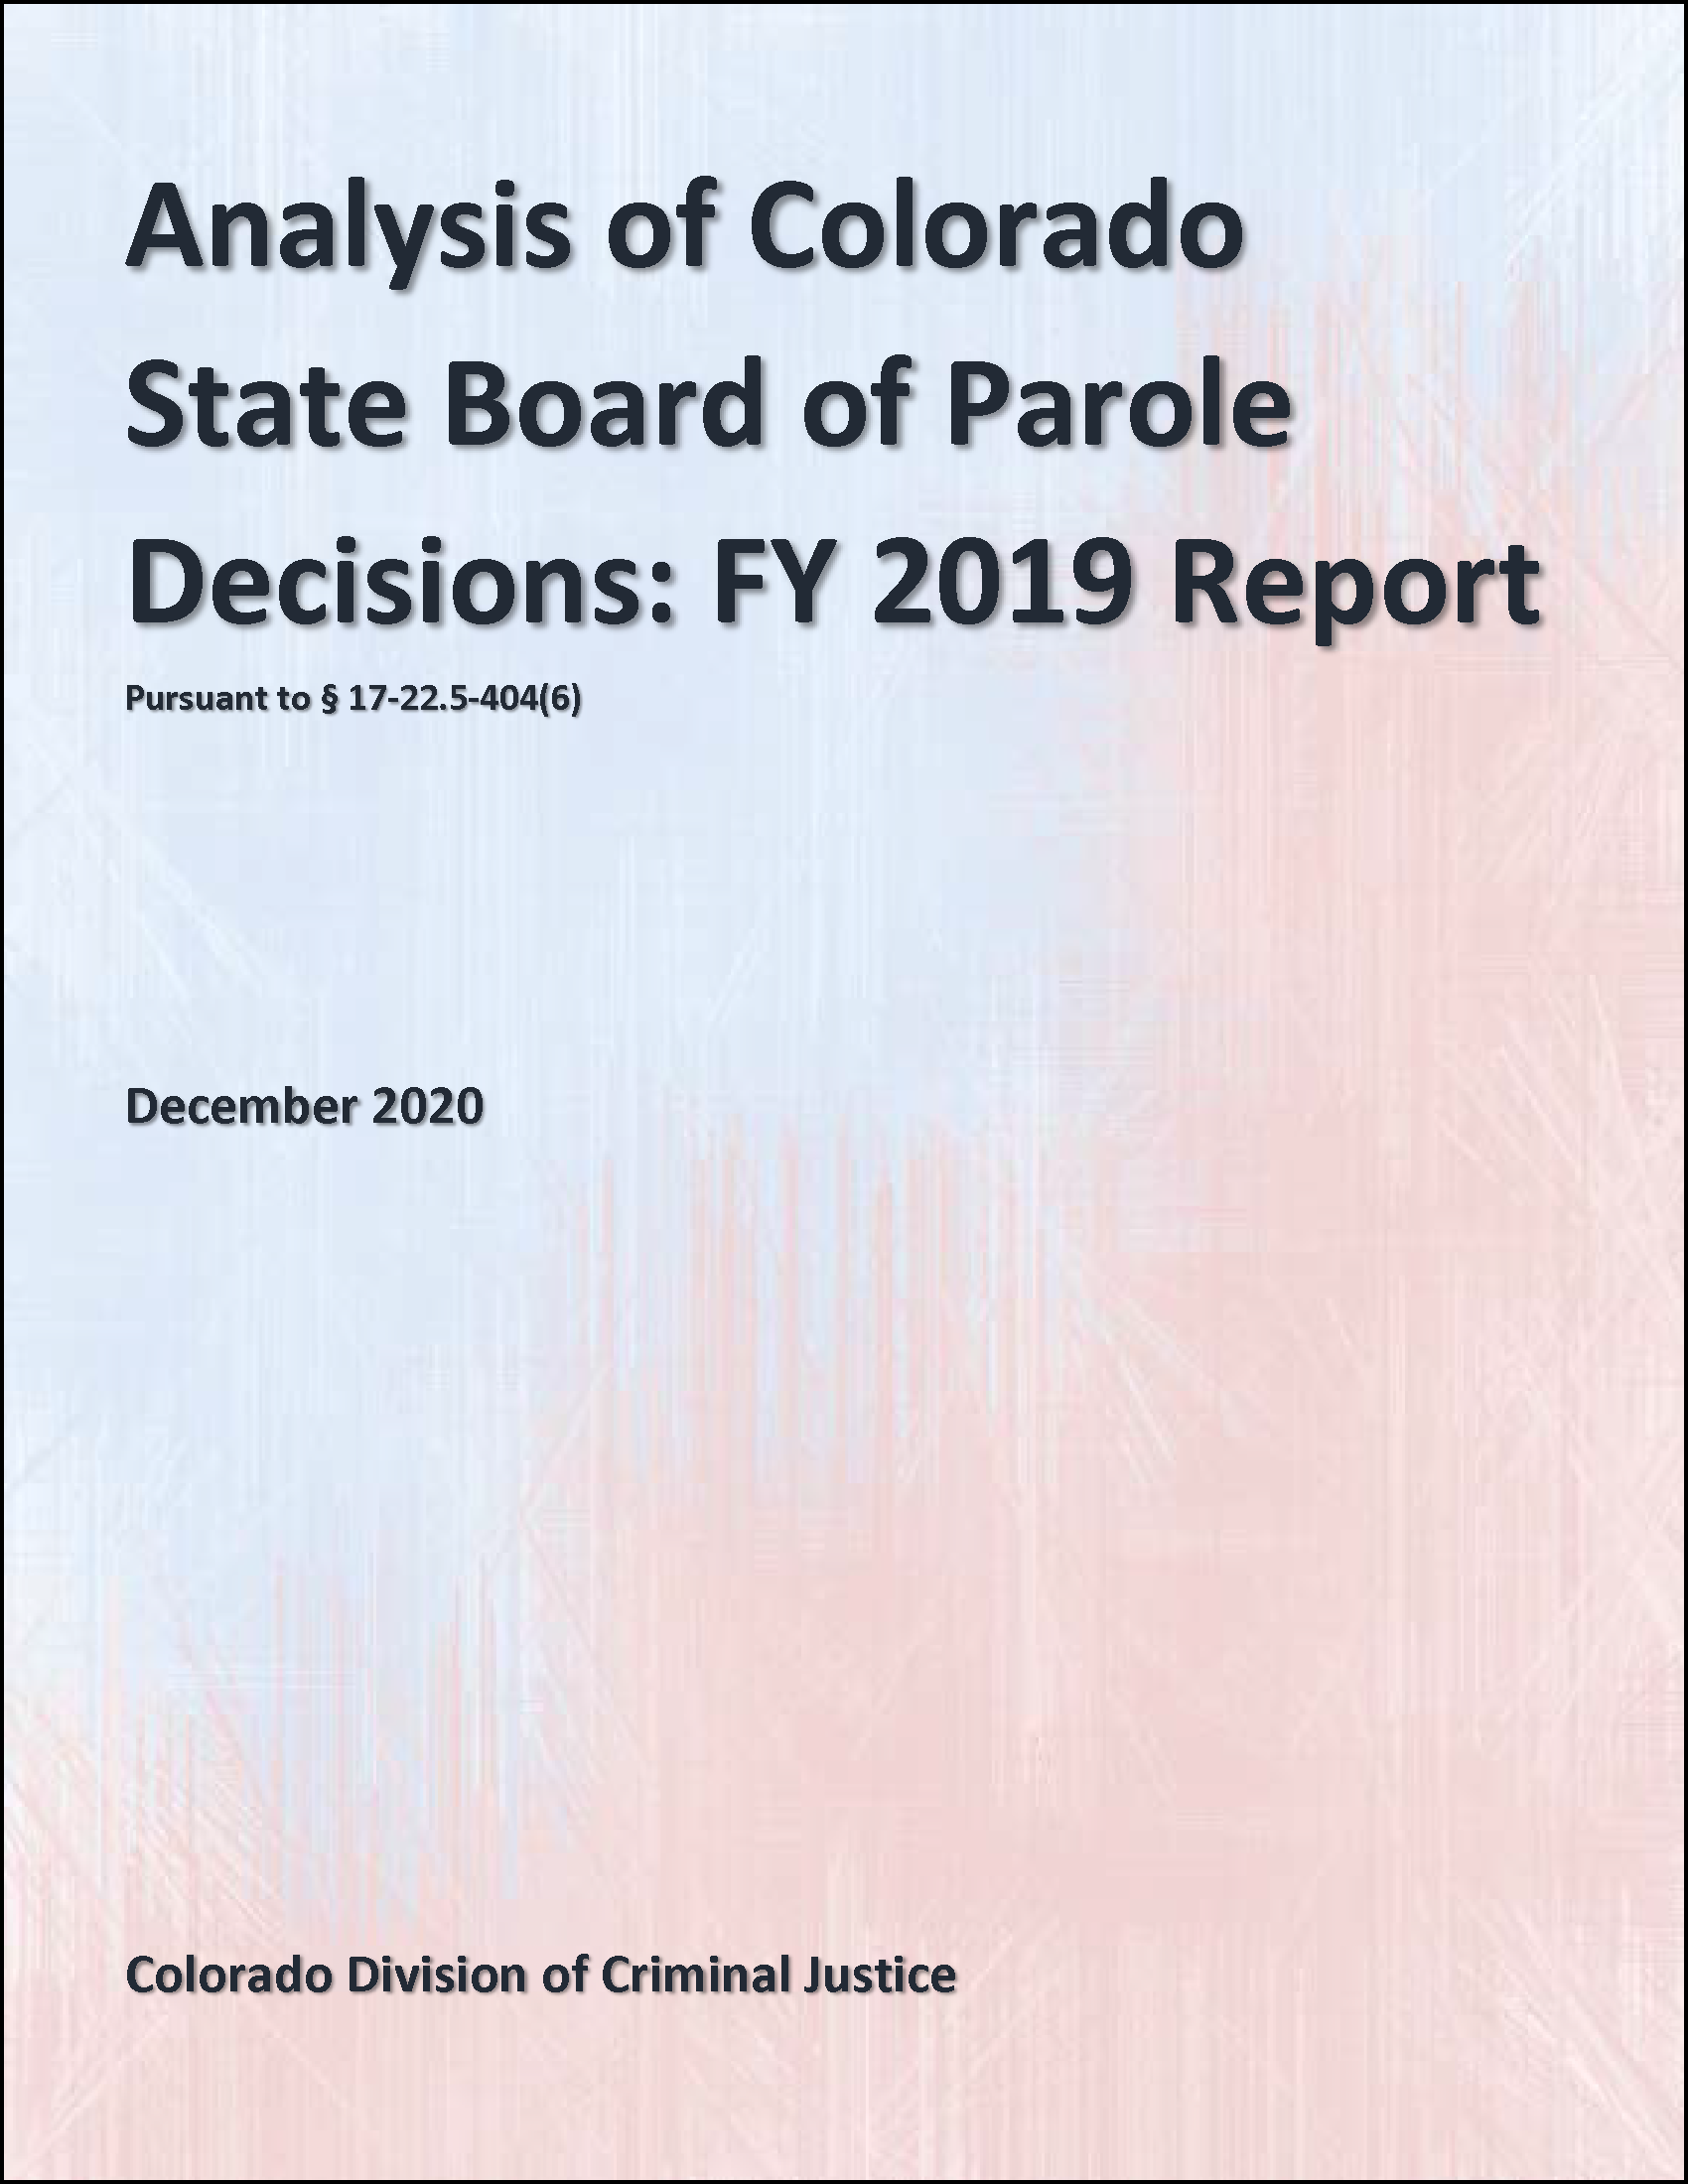 Analysis of Colorado State Board of Parole Decisions: FY 2019 Report(December 2020)